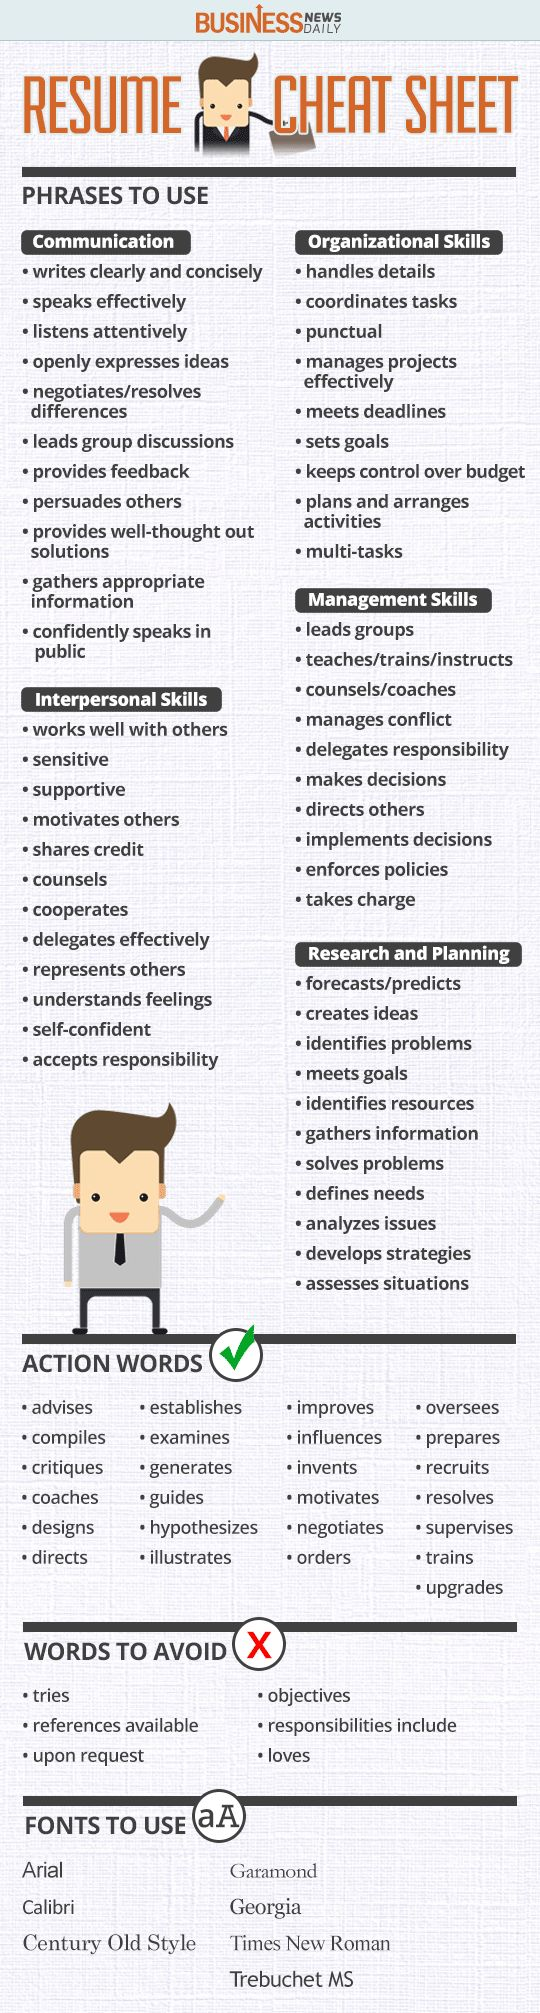 Opposenewapstandardsus  Seductive  Ideas About Resume On Pinterest  Cv Format Resume  With Magnificent Resume Cheat Sheet Infographic Andrews Almost Done With A Complete Unit On Employment Which With Adorable Payroll Resume Also Resume Builer In Addition Walmart Resume Paper And Material Handler Resume As Well As Cna Resumes Additionally How To Make A Resume With No Experience From Pinterestcom With Opposenewapstandardsus  Magnificent  Ideas About Resume On Pinterest  Cv Format Resume  With Adorable Resume Cheat Sheet Infographic Andrews Almost Done With A Complete Unit On Employment Which And Seductive Payroll Resume Also Resume Builer In Addition Walmart Resume Paper From Pinterestcom